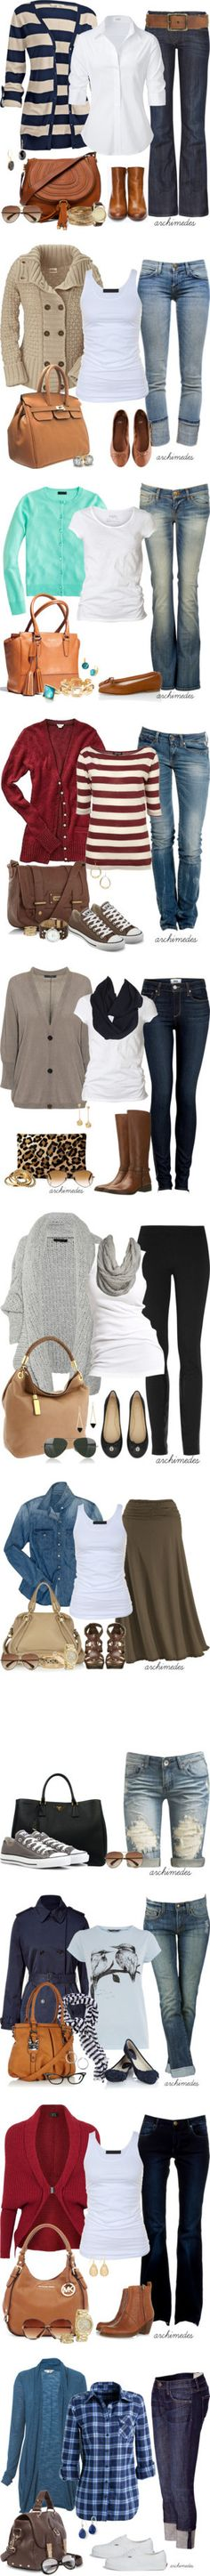 Fall styles - love them all